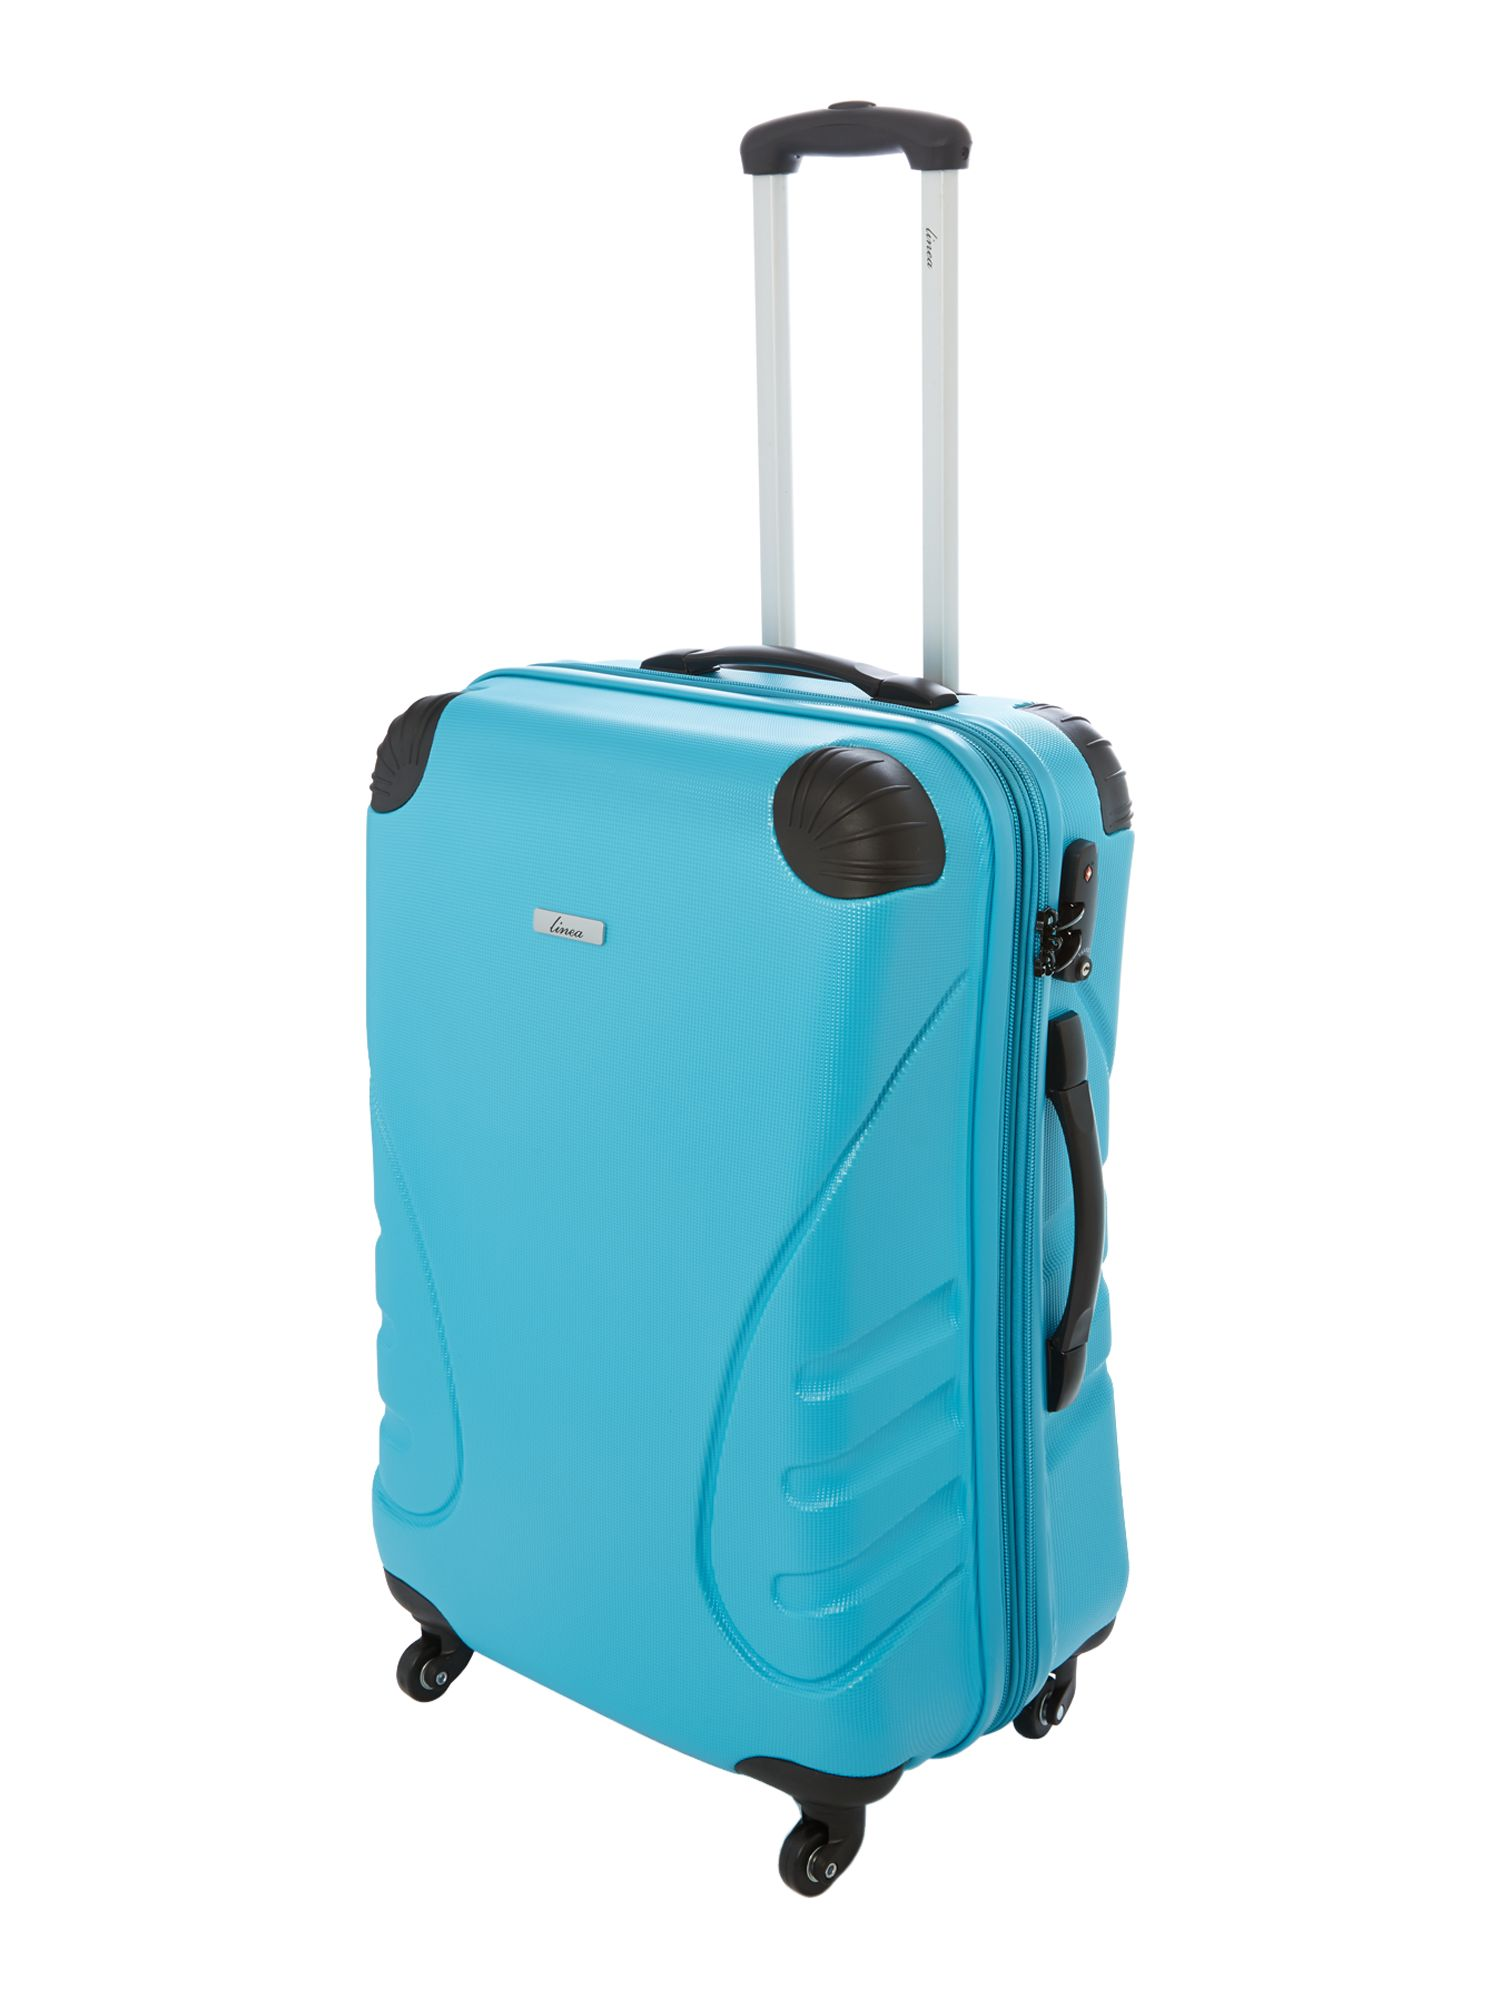 Shell aqua 2 wheel hard medium suitcase